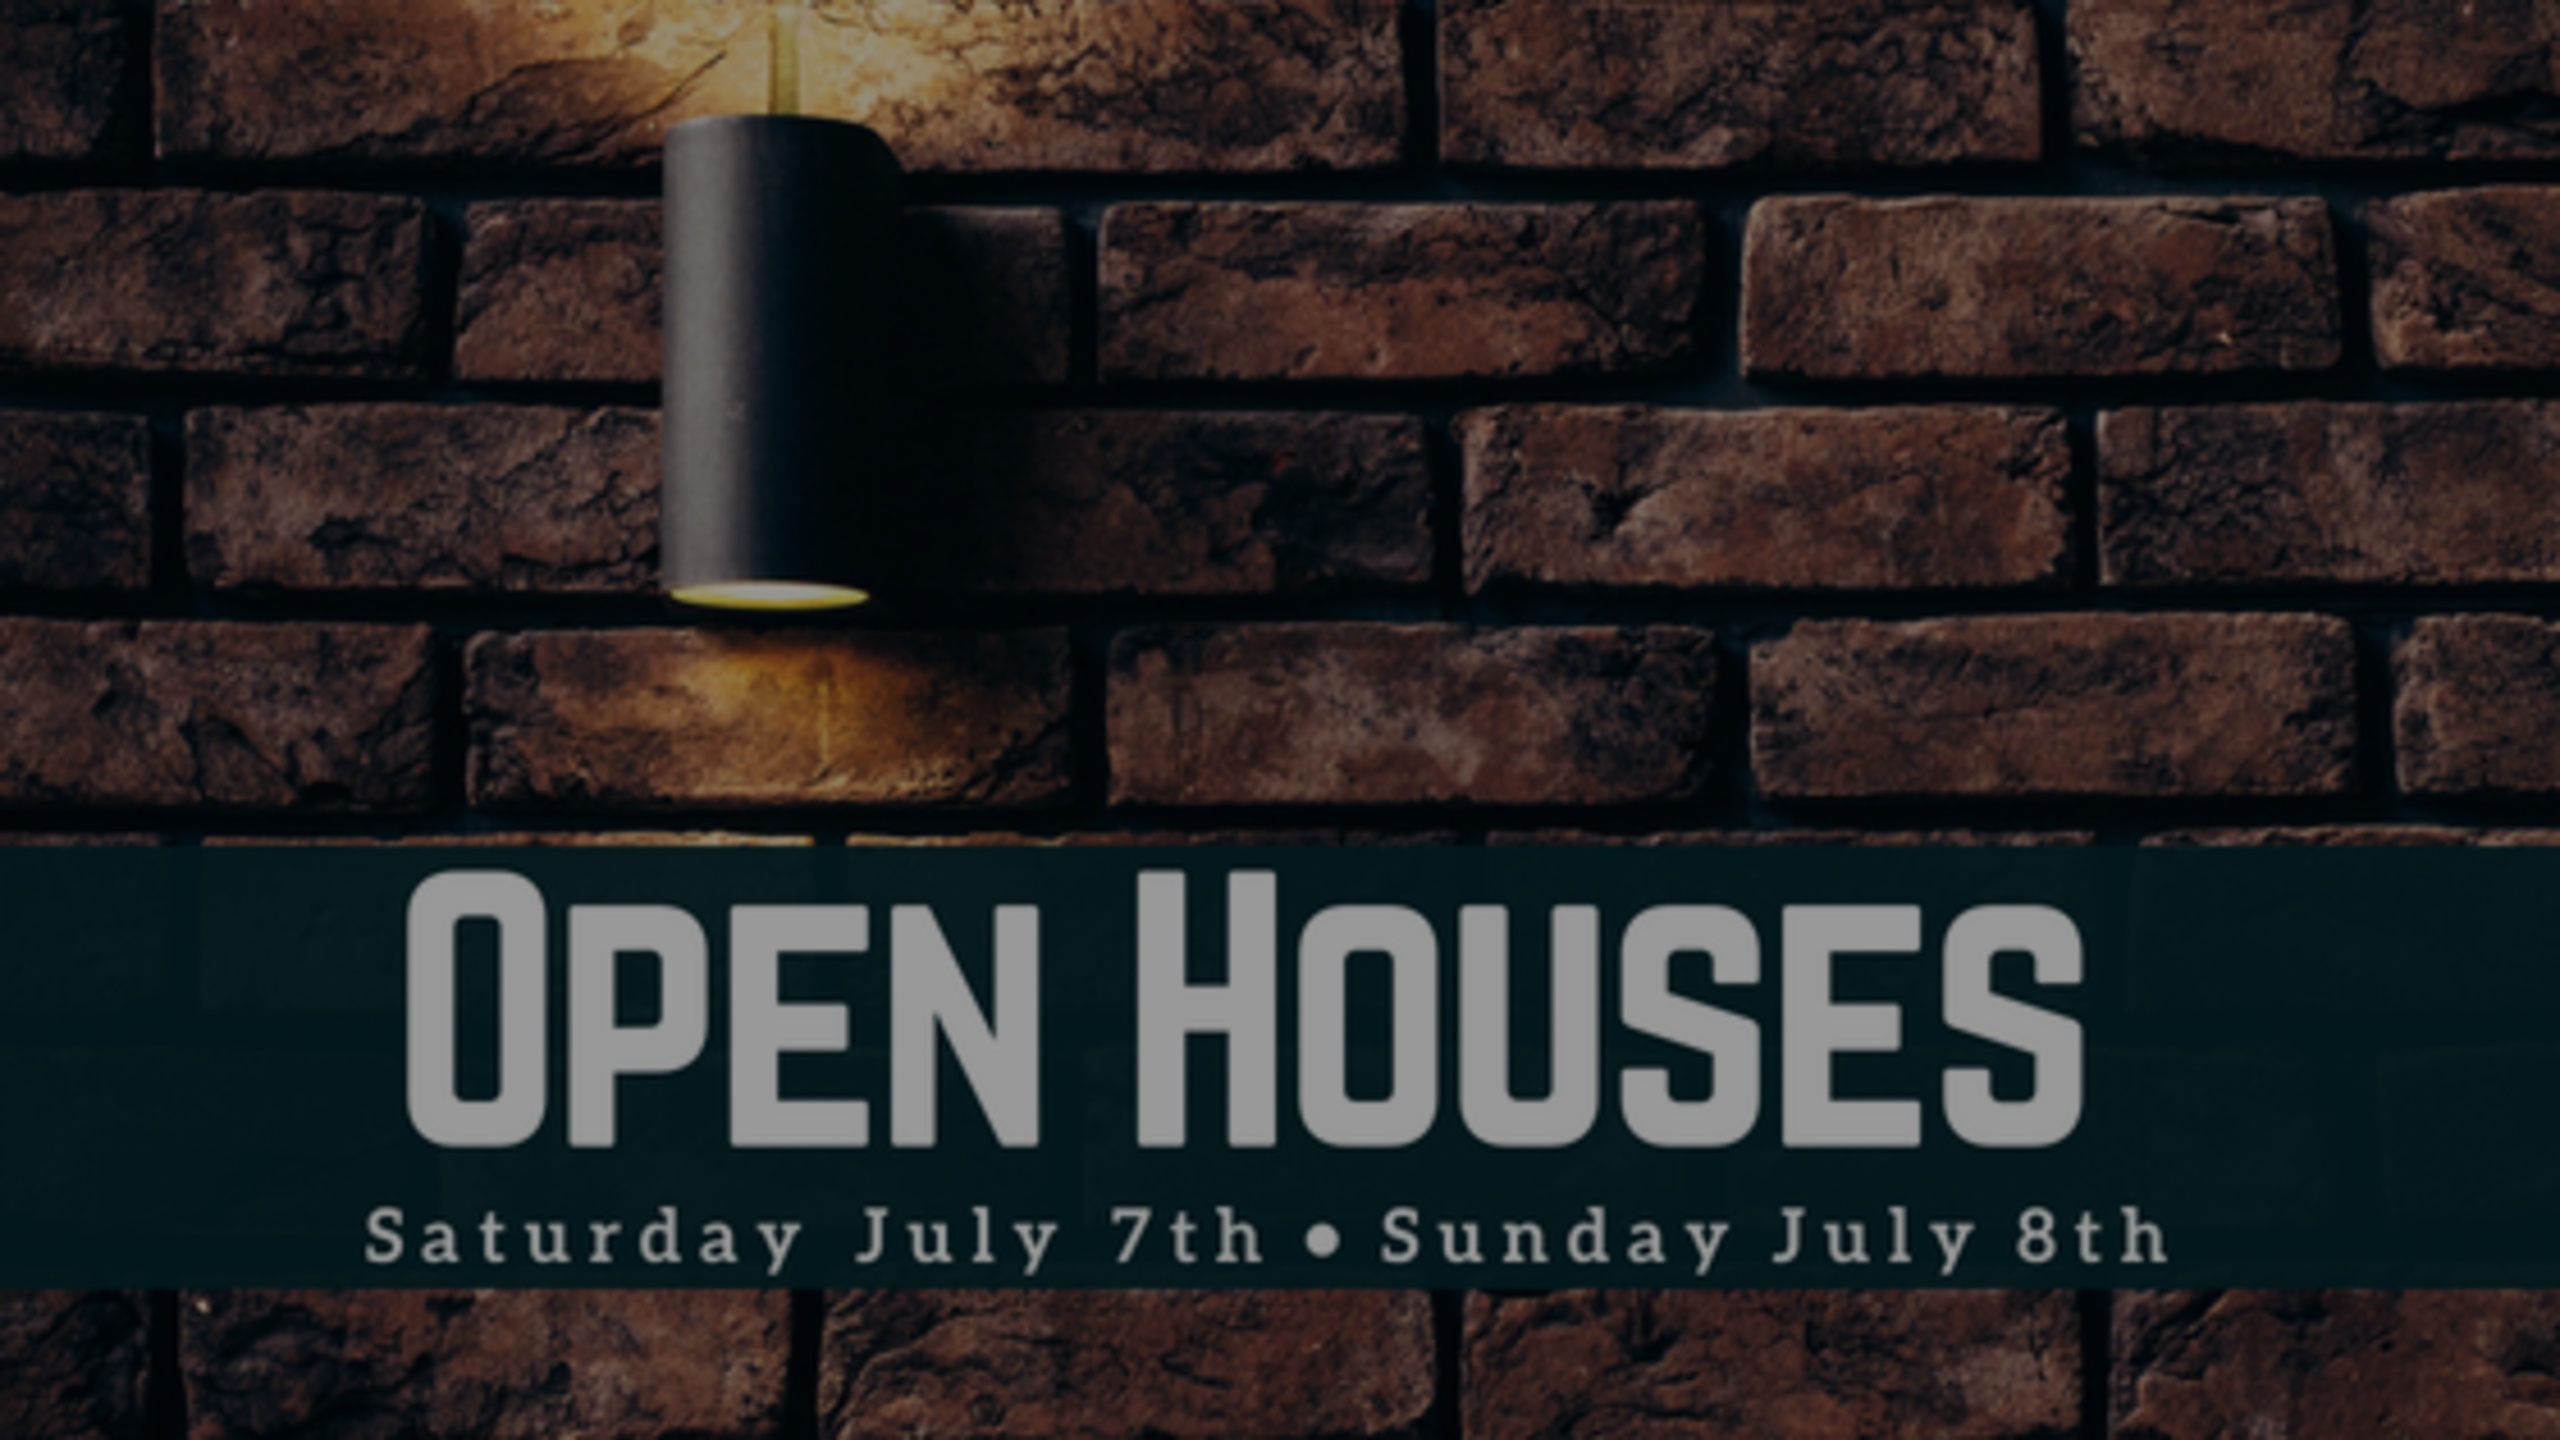 Our Open Houses: Weekend of 7/7 + 7/8